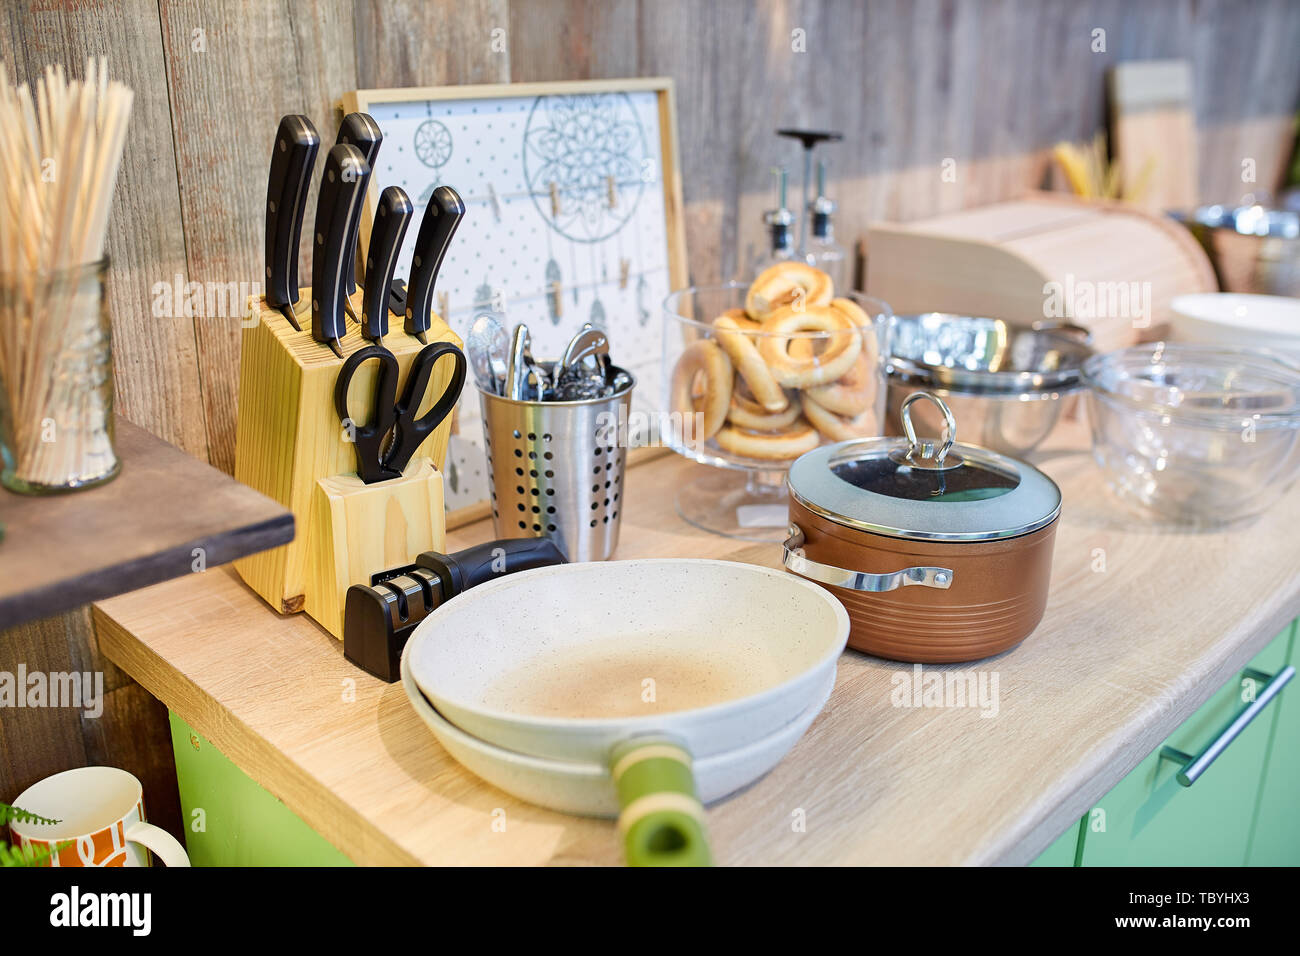 Kitchen utensils on the table. The hearth concept. - Stock Image